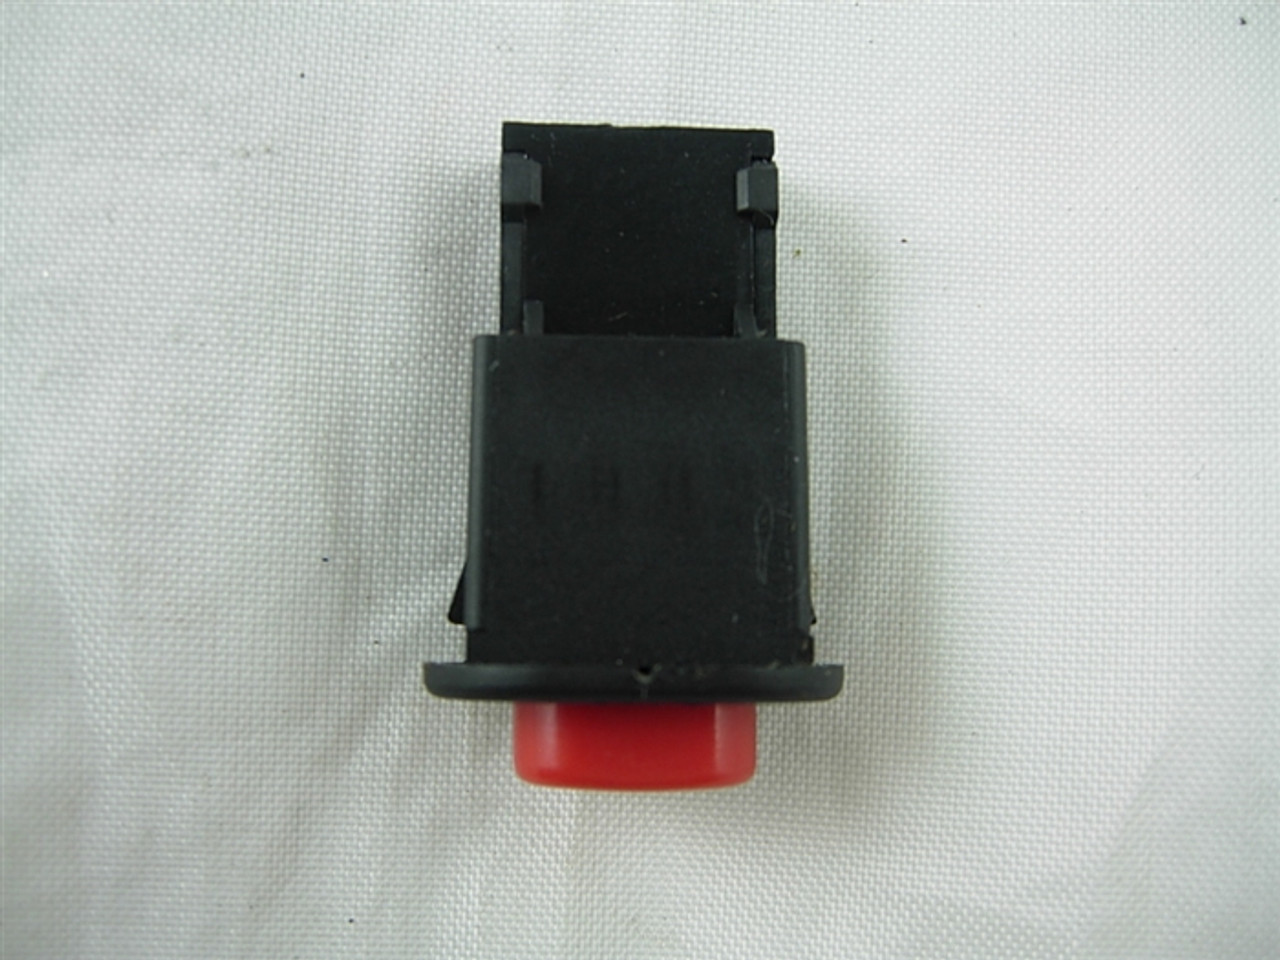 hazard light switch/button 10958-a54-4